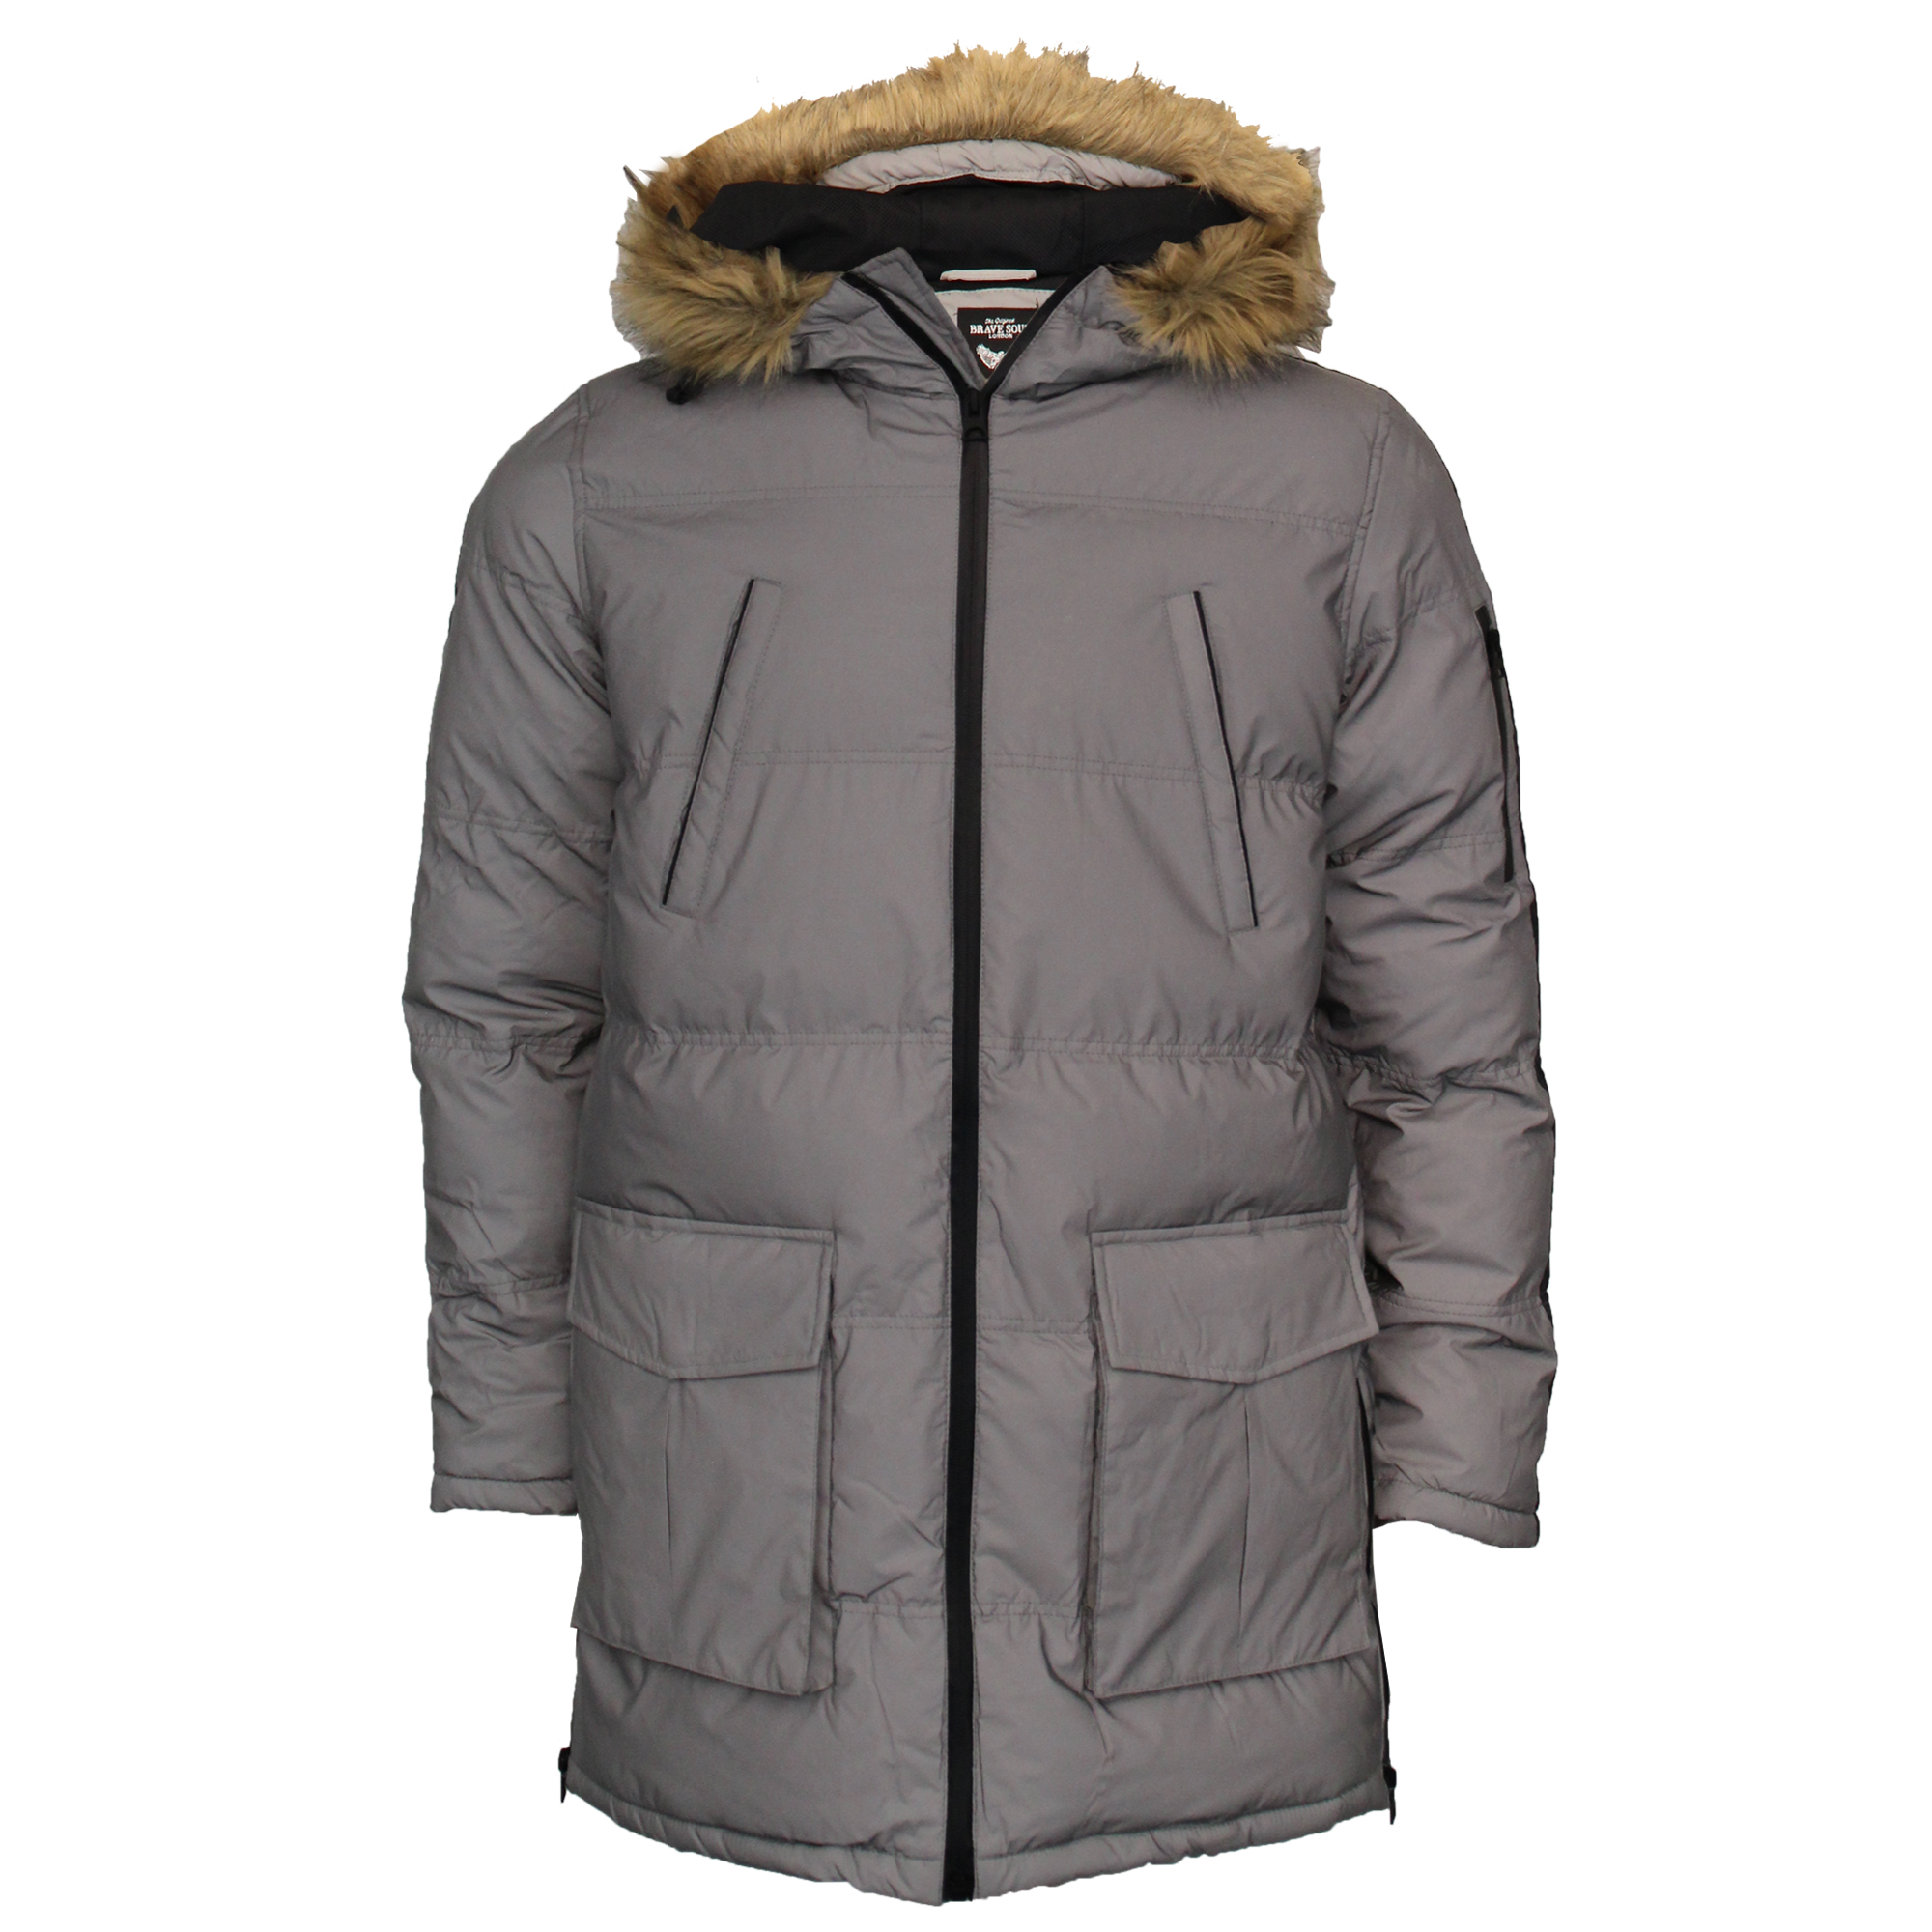 Mens-Reflective-Long-Bubble-Parka-Jacket-Brave-Soul-Coat-Hooded-Padded-Winter thumbnail 7